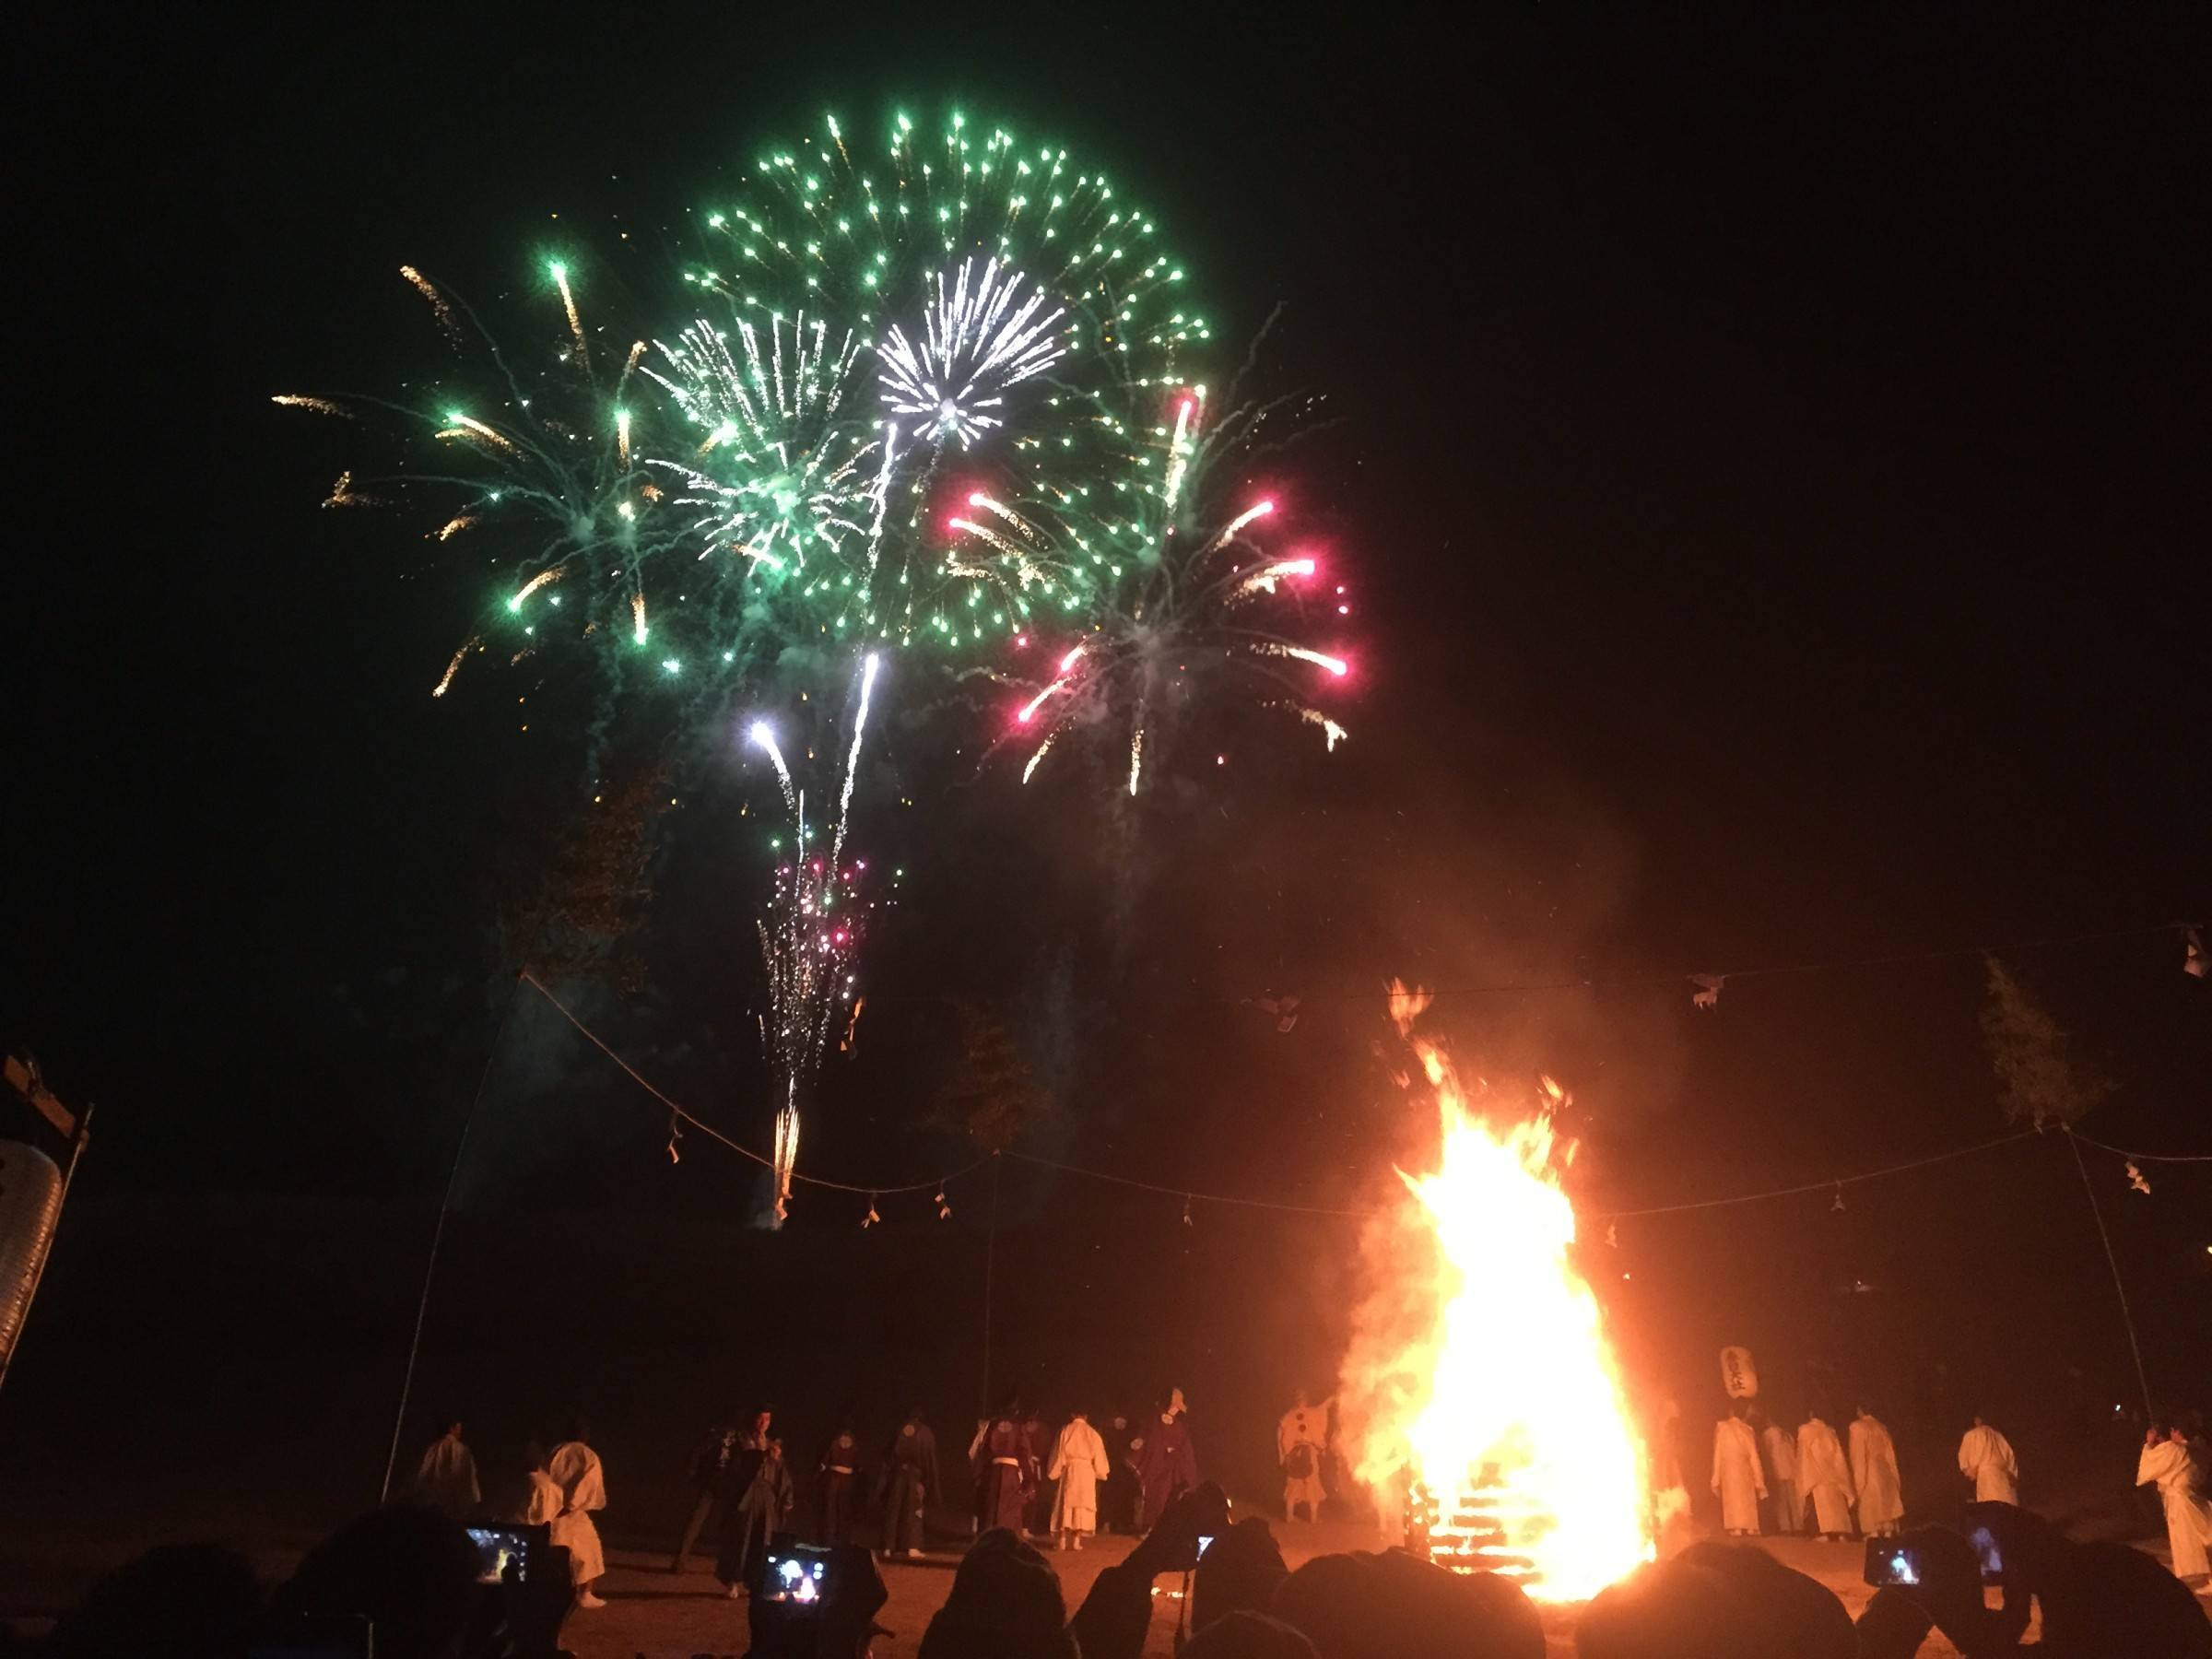 While the bonfire got going, we were treated to a truly spectacular 15 minute firework display... Did I mention entrance is free? Bonus!